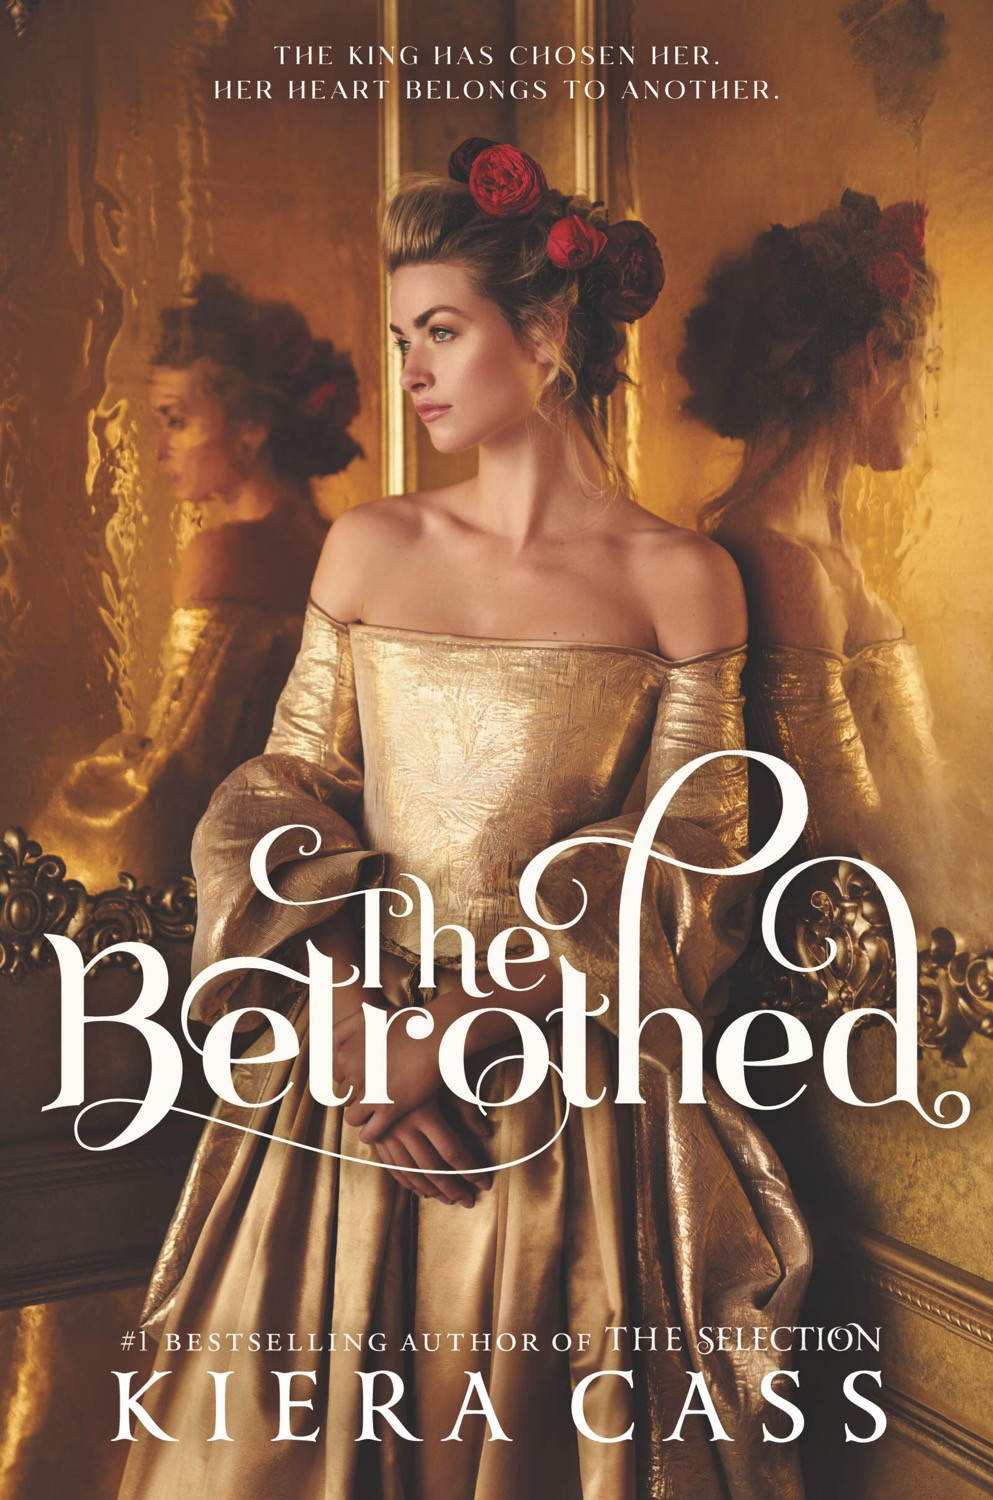 The Betrothed by Kiera Cass, book cover. May releases, 2020.